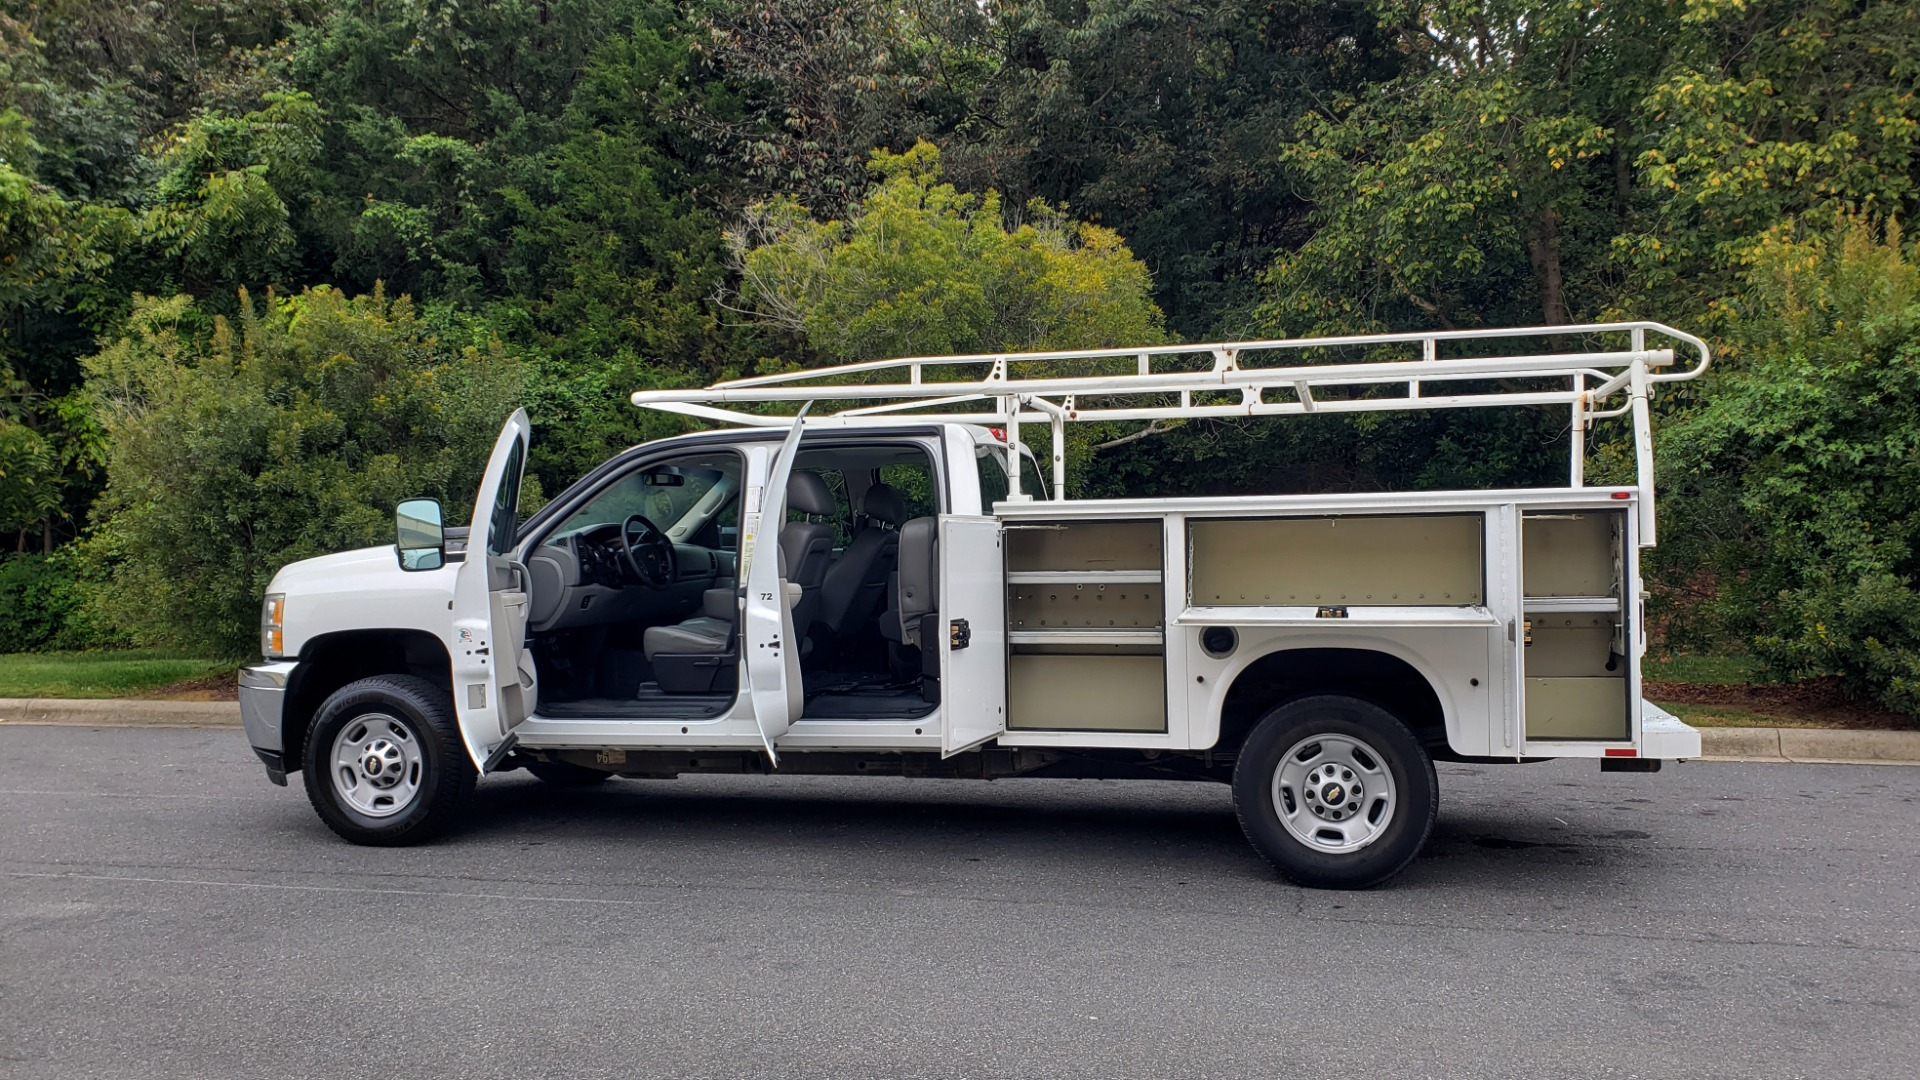 Used 2013 Chevrolet SILVERADO 2500HD WORK TRUCK 4WD / 6.0L V8 / AUTO / TOOL BOX / CLEAN for sale Sold at Formula Imports in Charlotte NC 28227 4